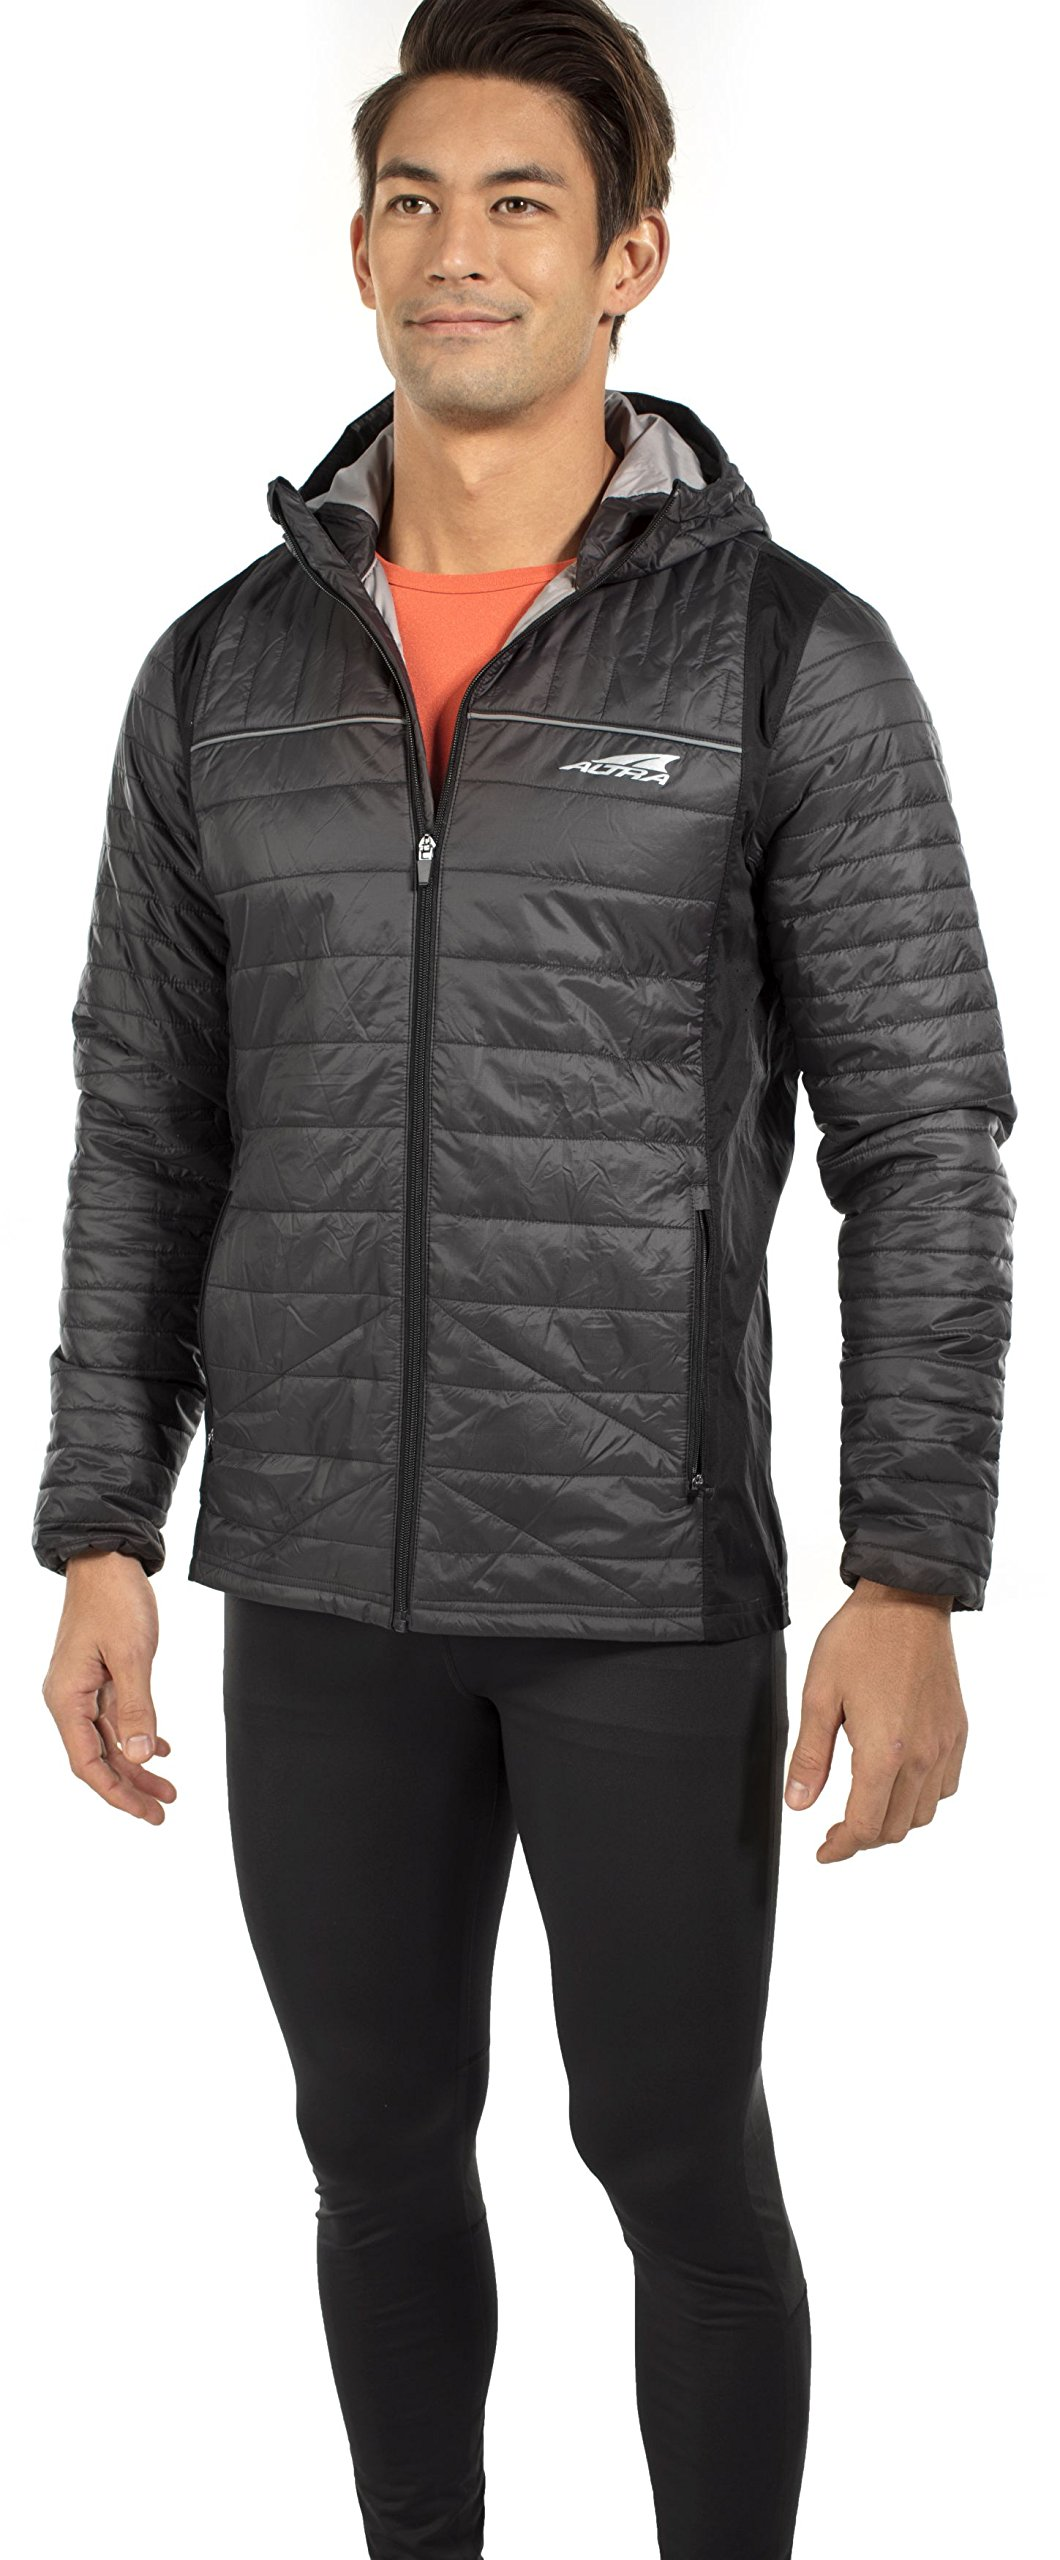 Altra Micropuff Stretch Jacket - Men's Black Large by Altra (Image #1)